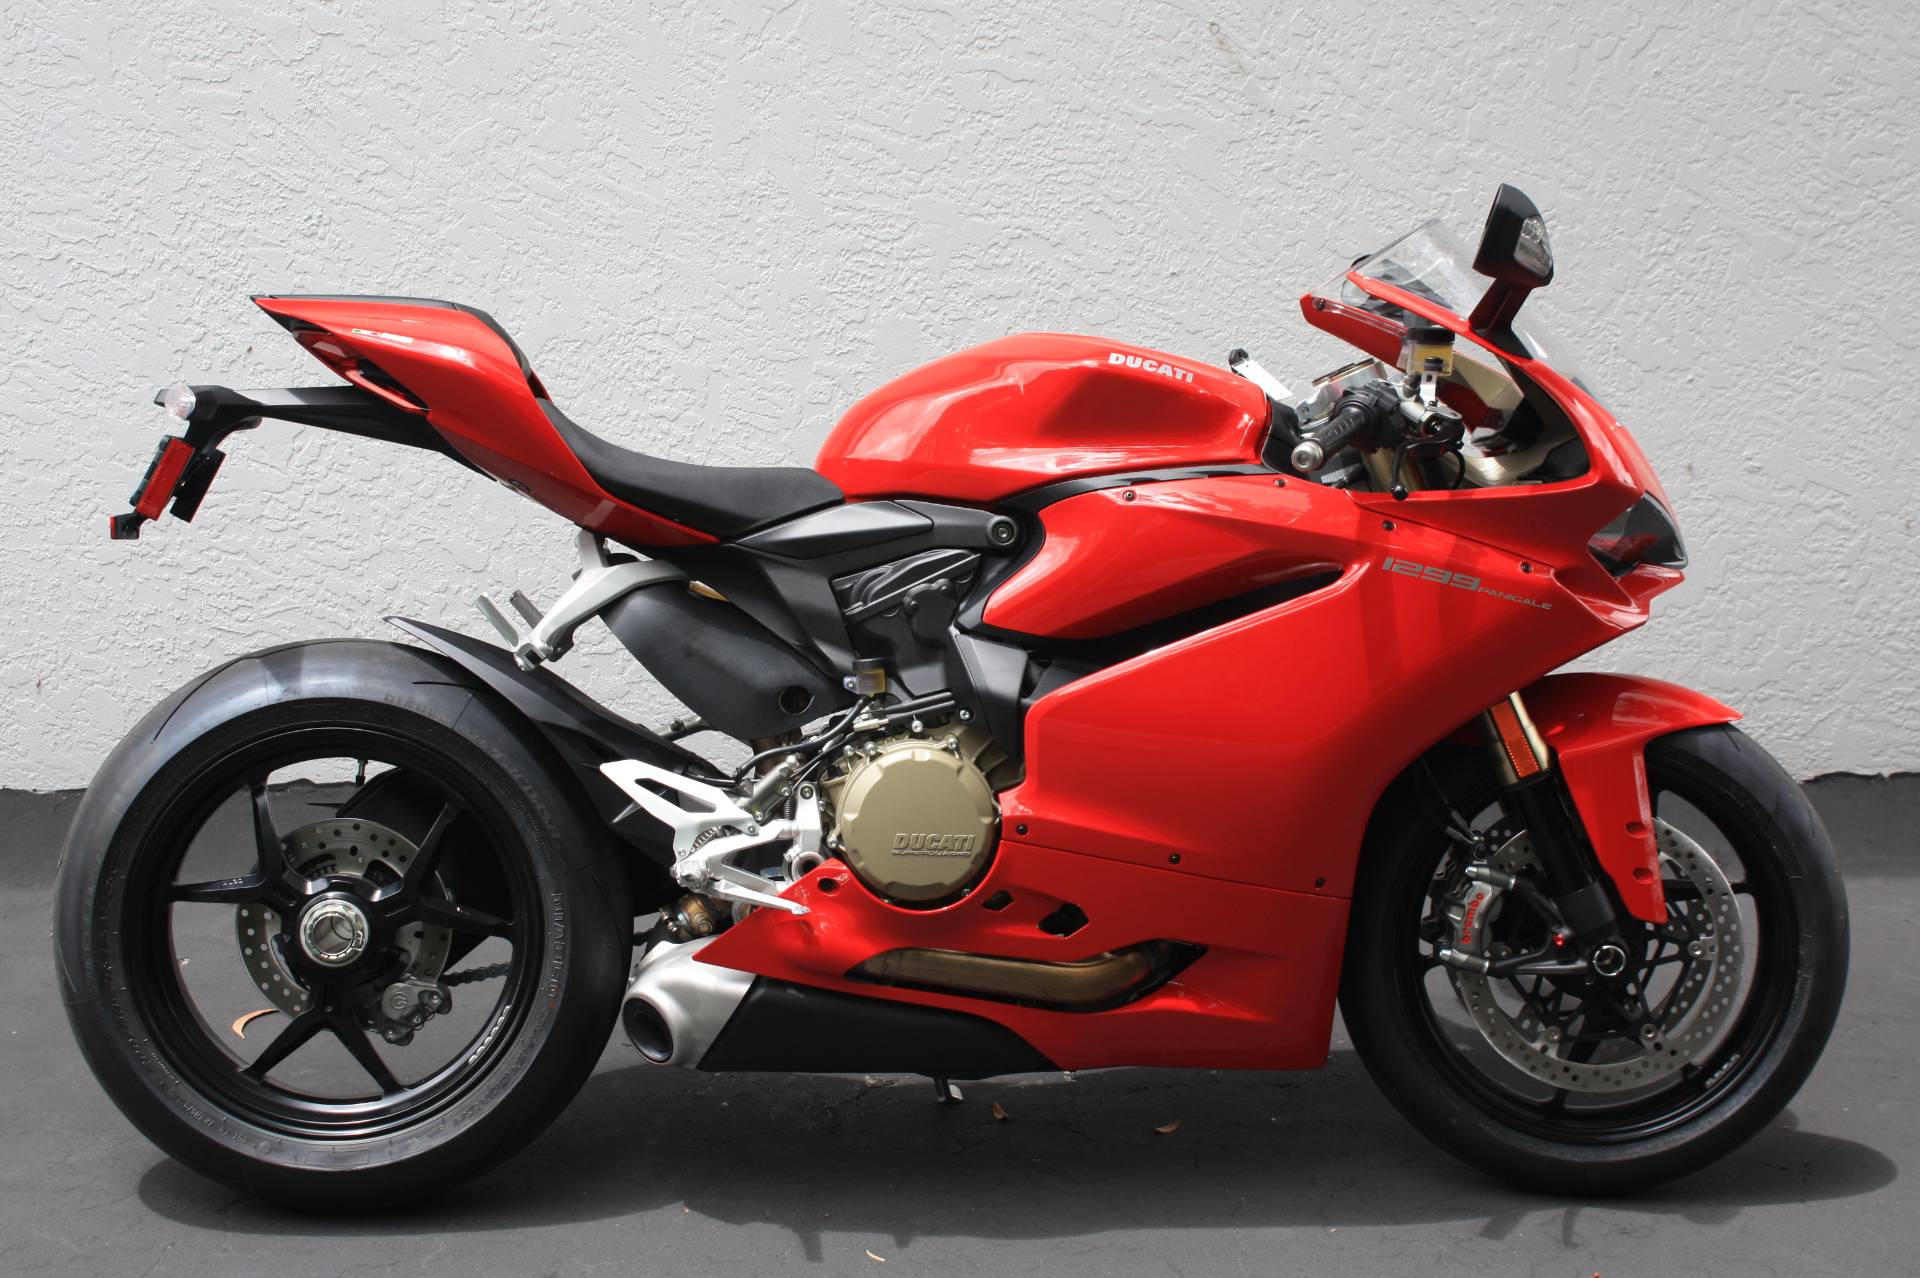 2016 1299 Panigale